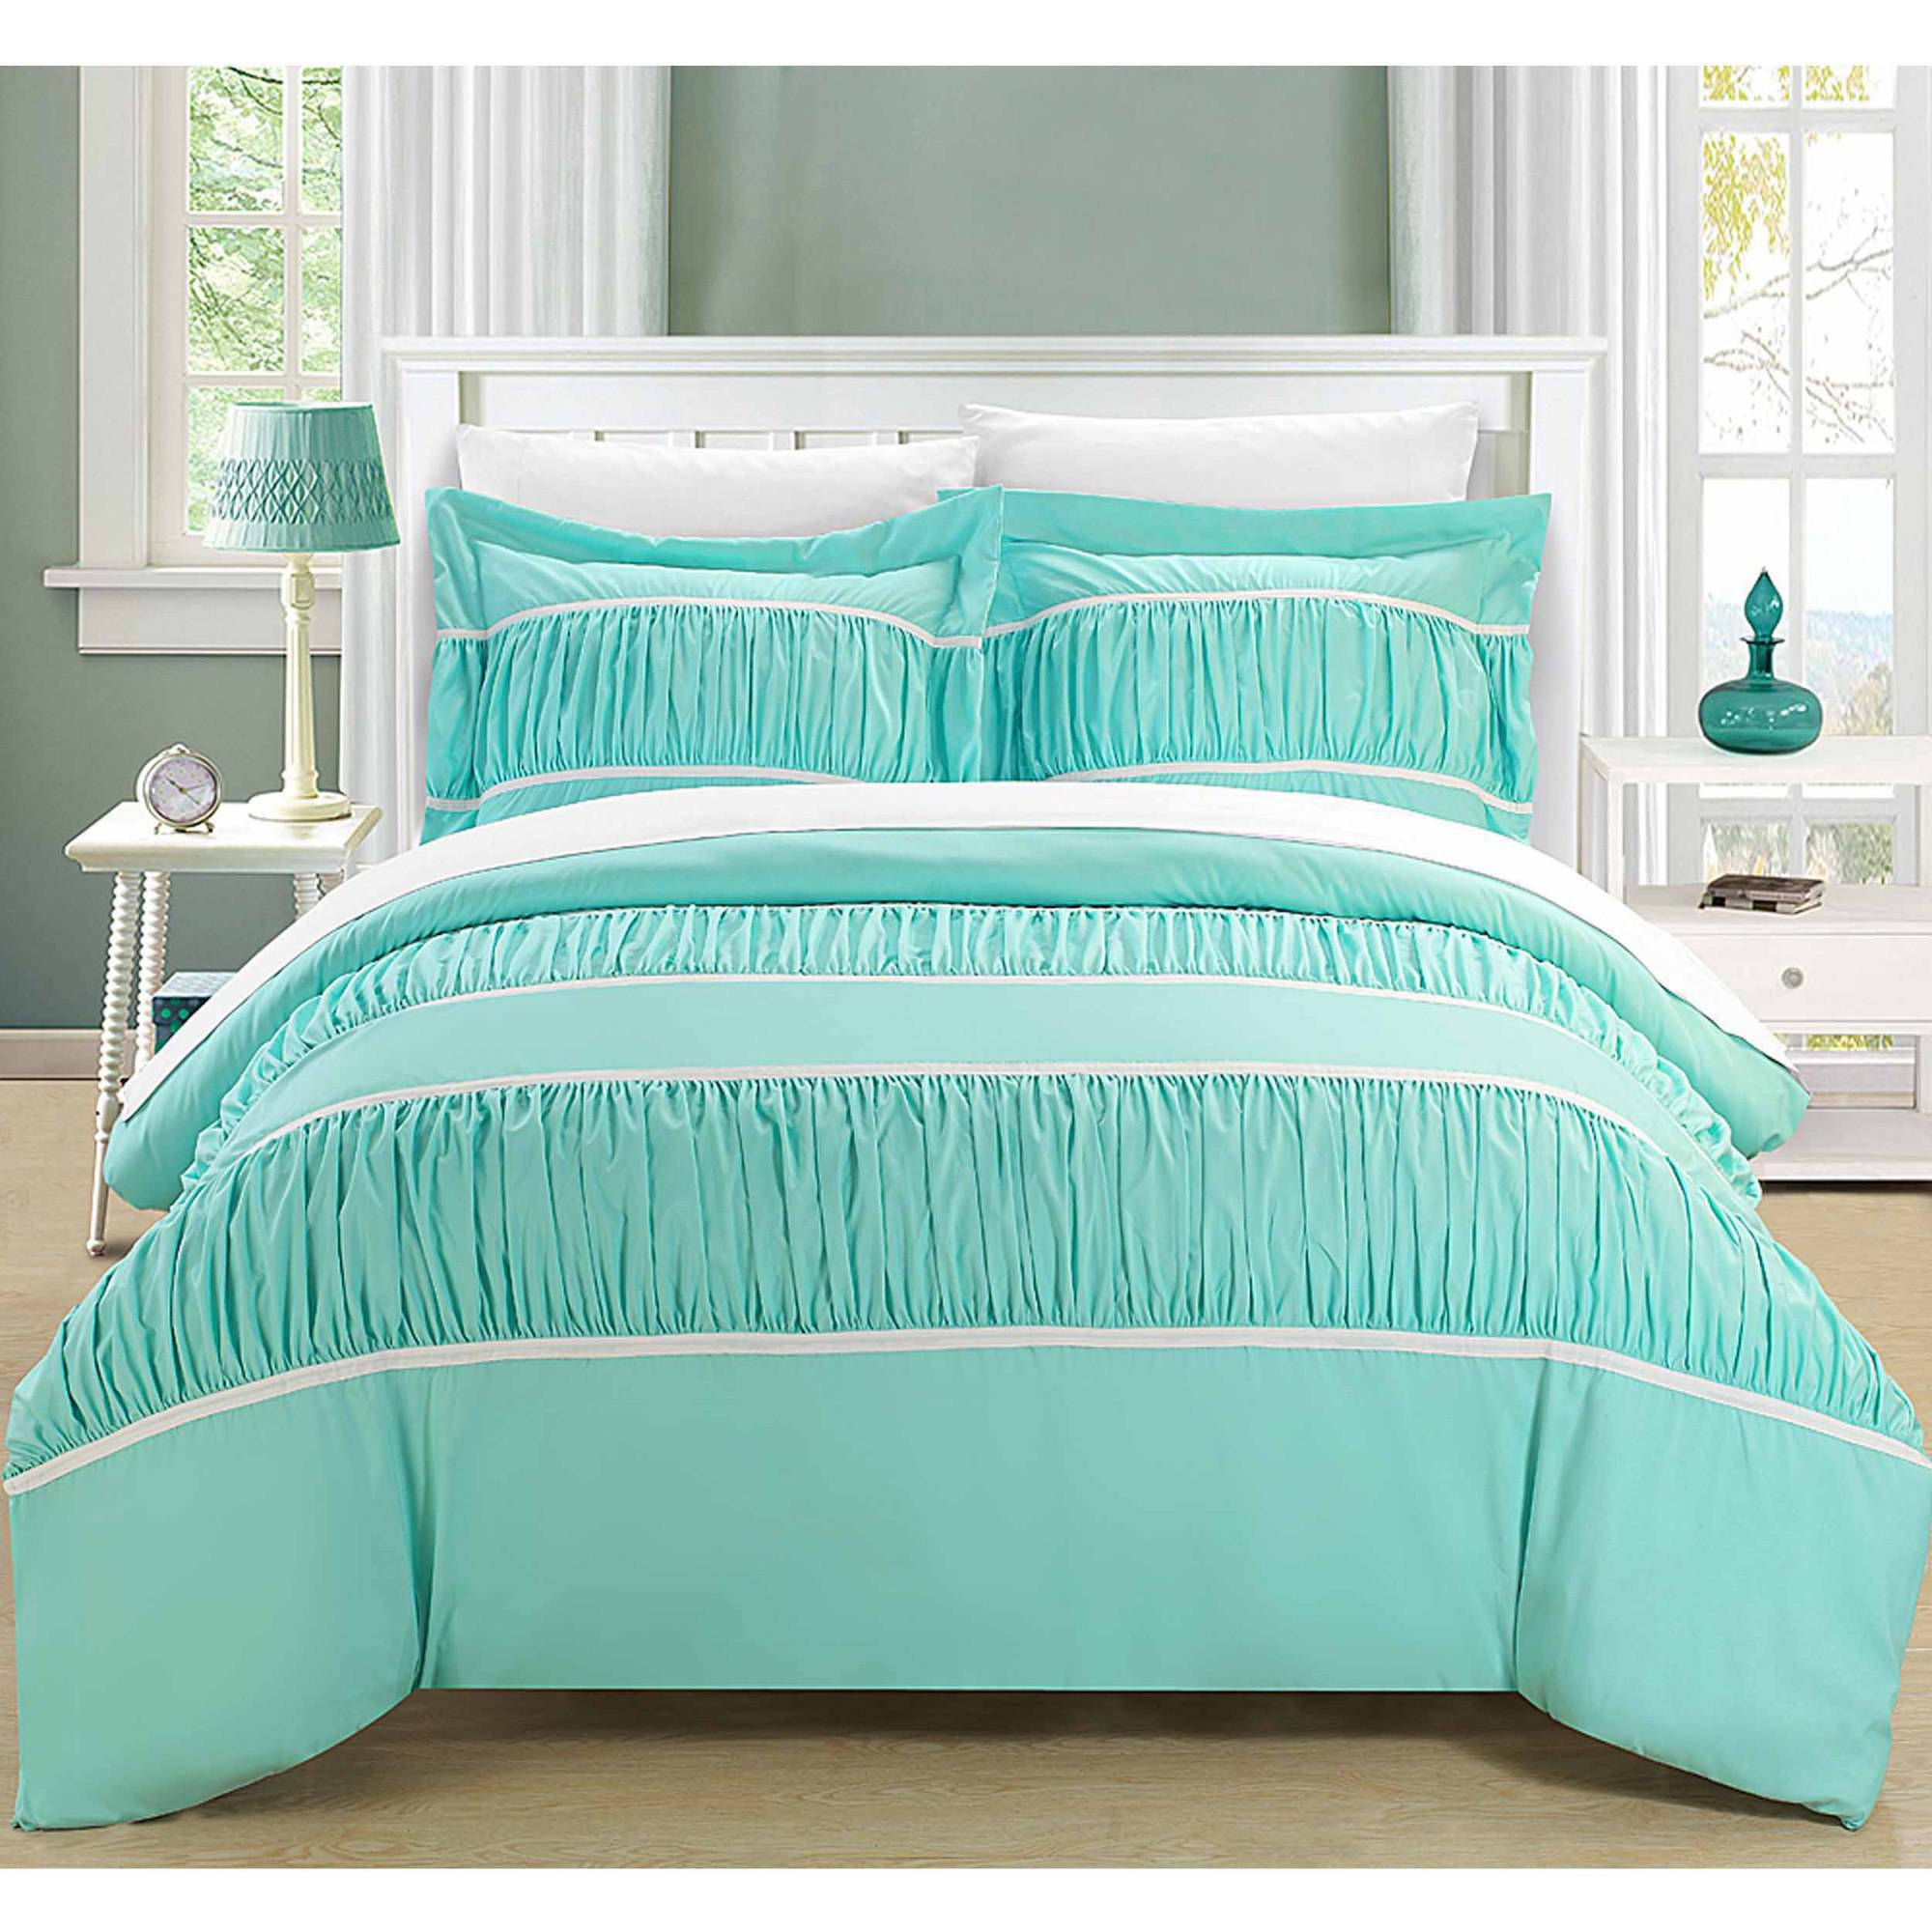 Chic Home Elizabeth 7-Piece Bedding Ruffled Duvet Cover Set